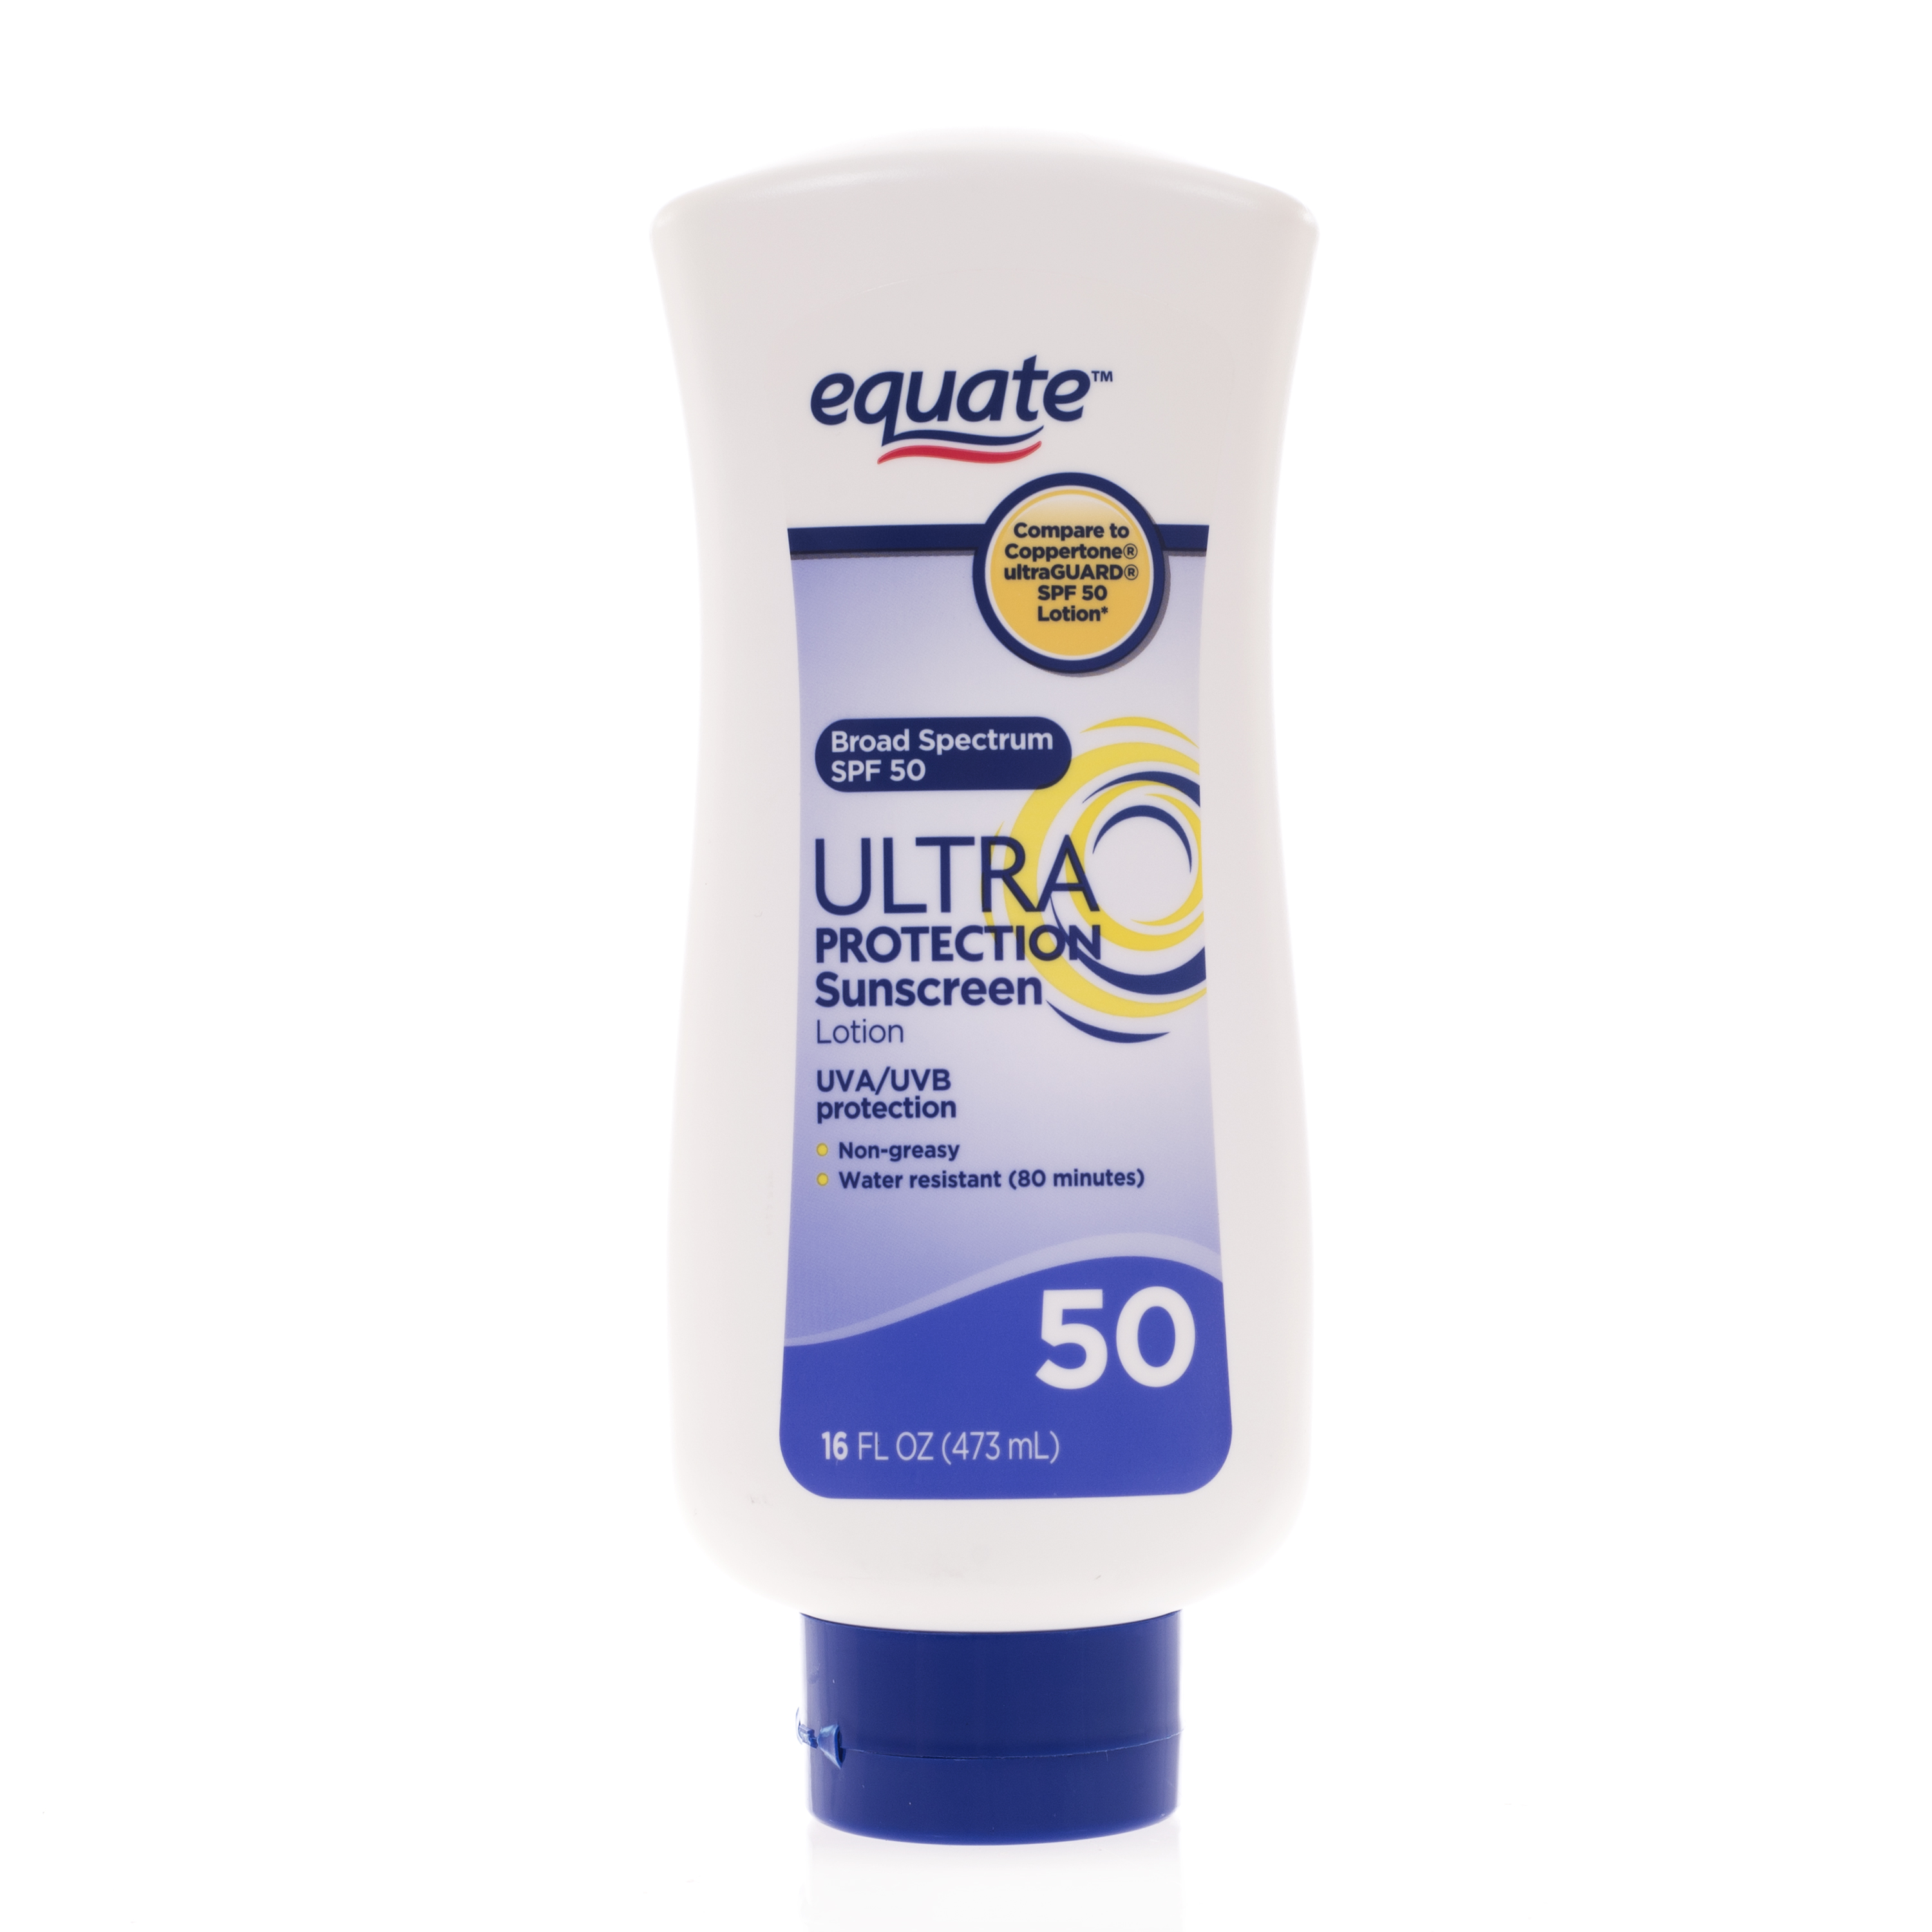 Equate Ultra Protection Suncreen Lotion, SPF 50